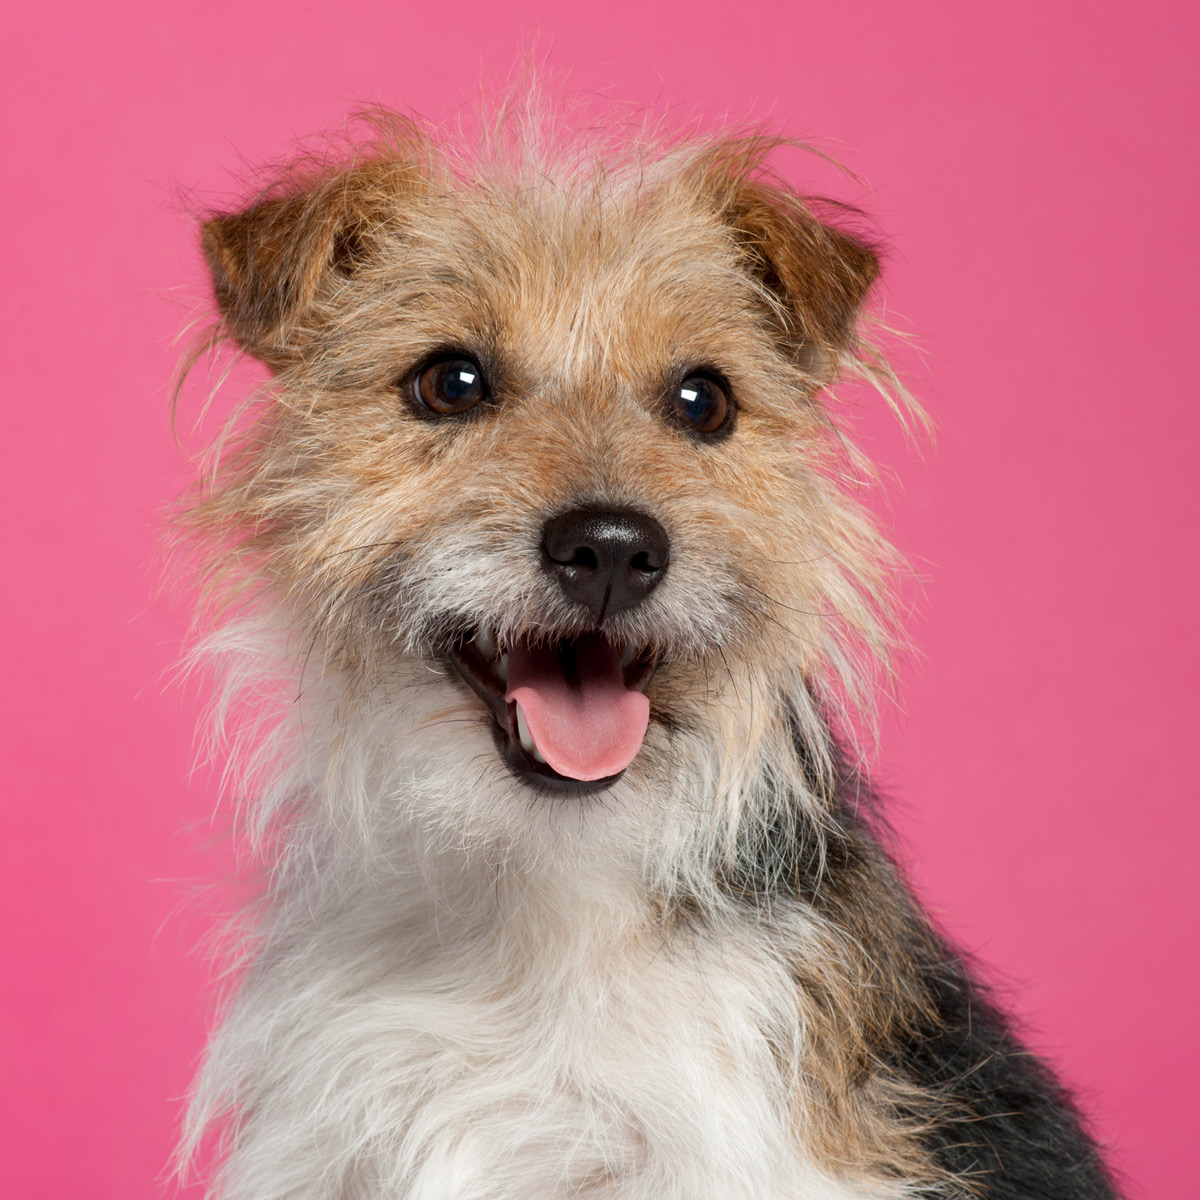 cute dog with pink background